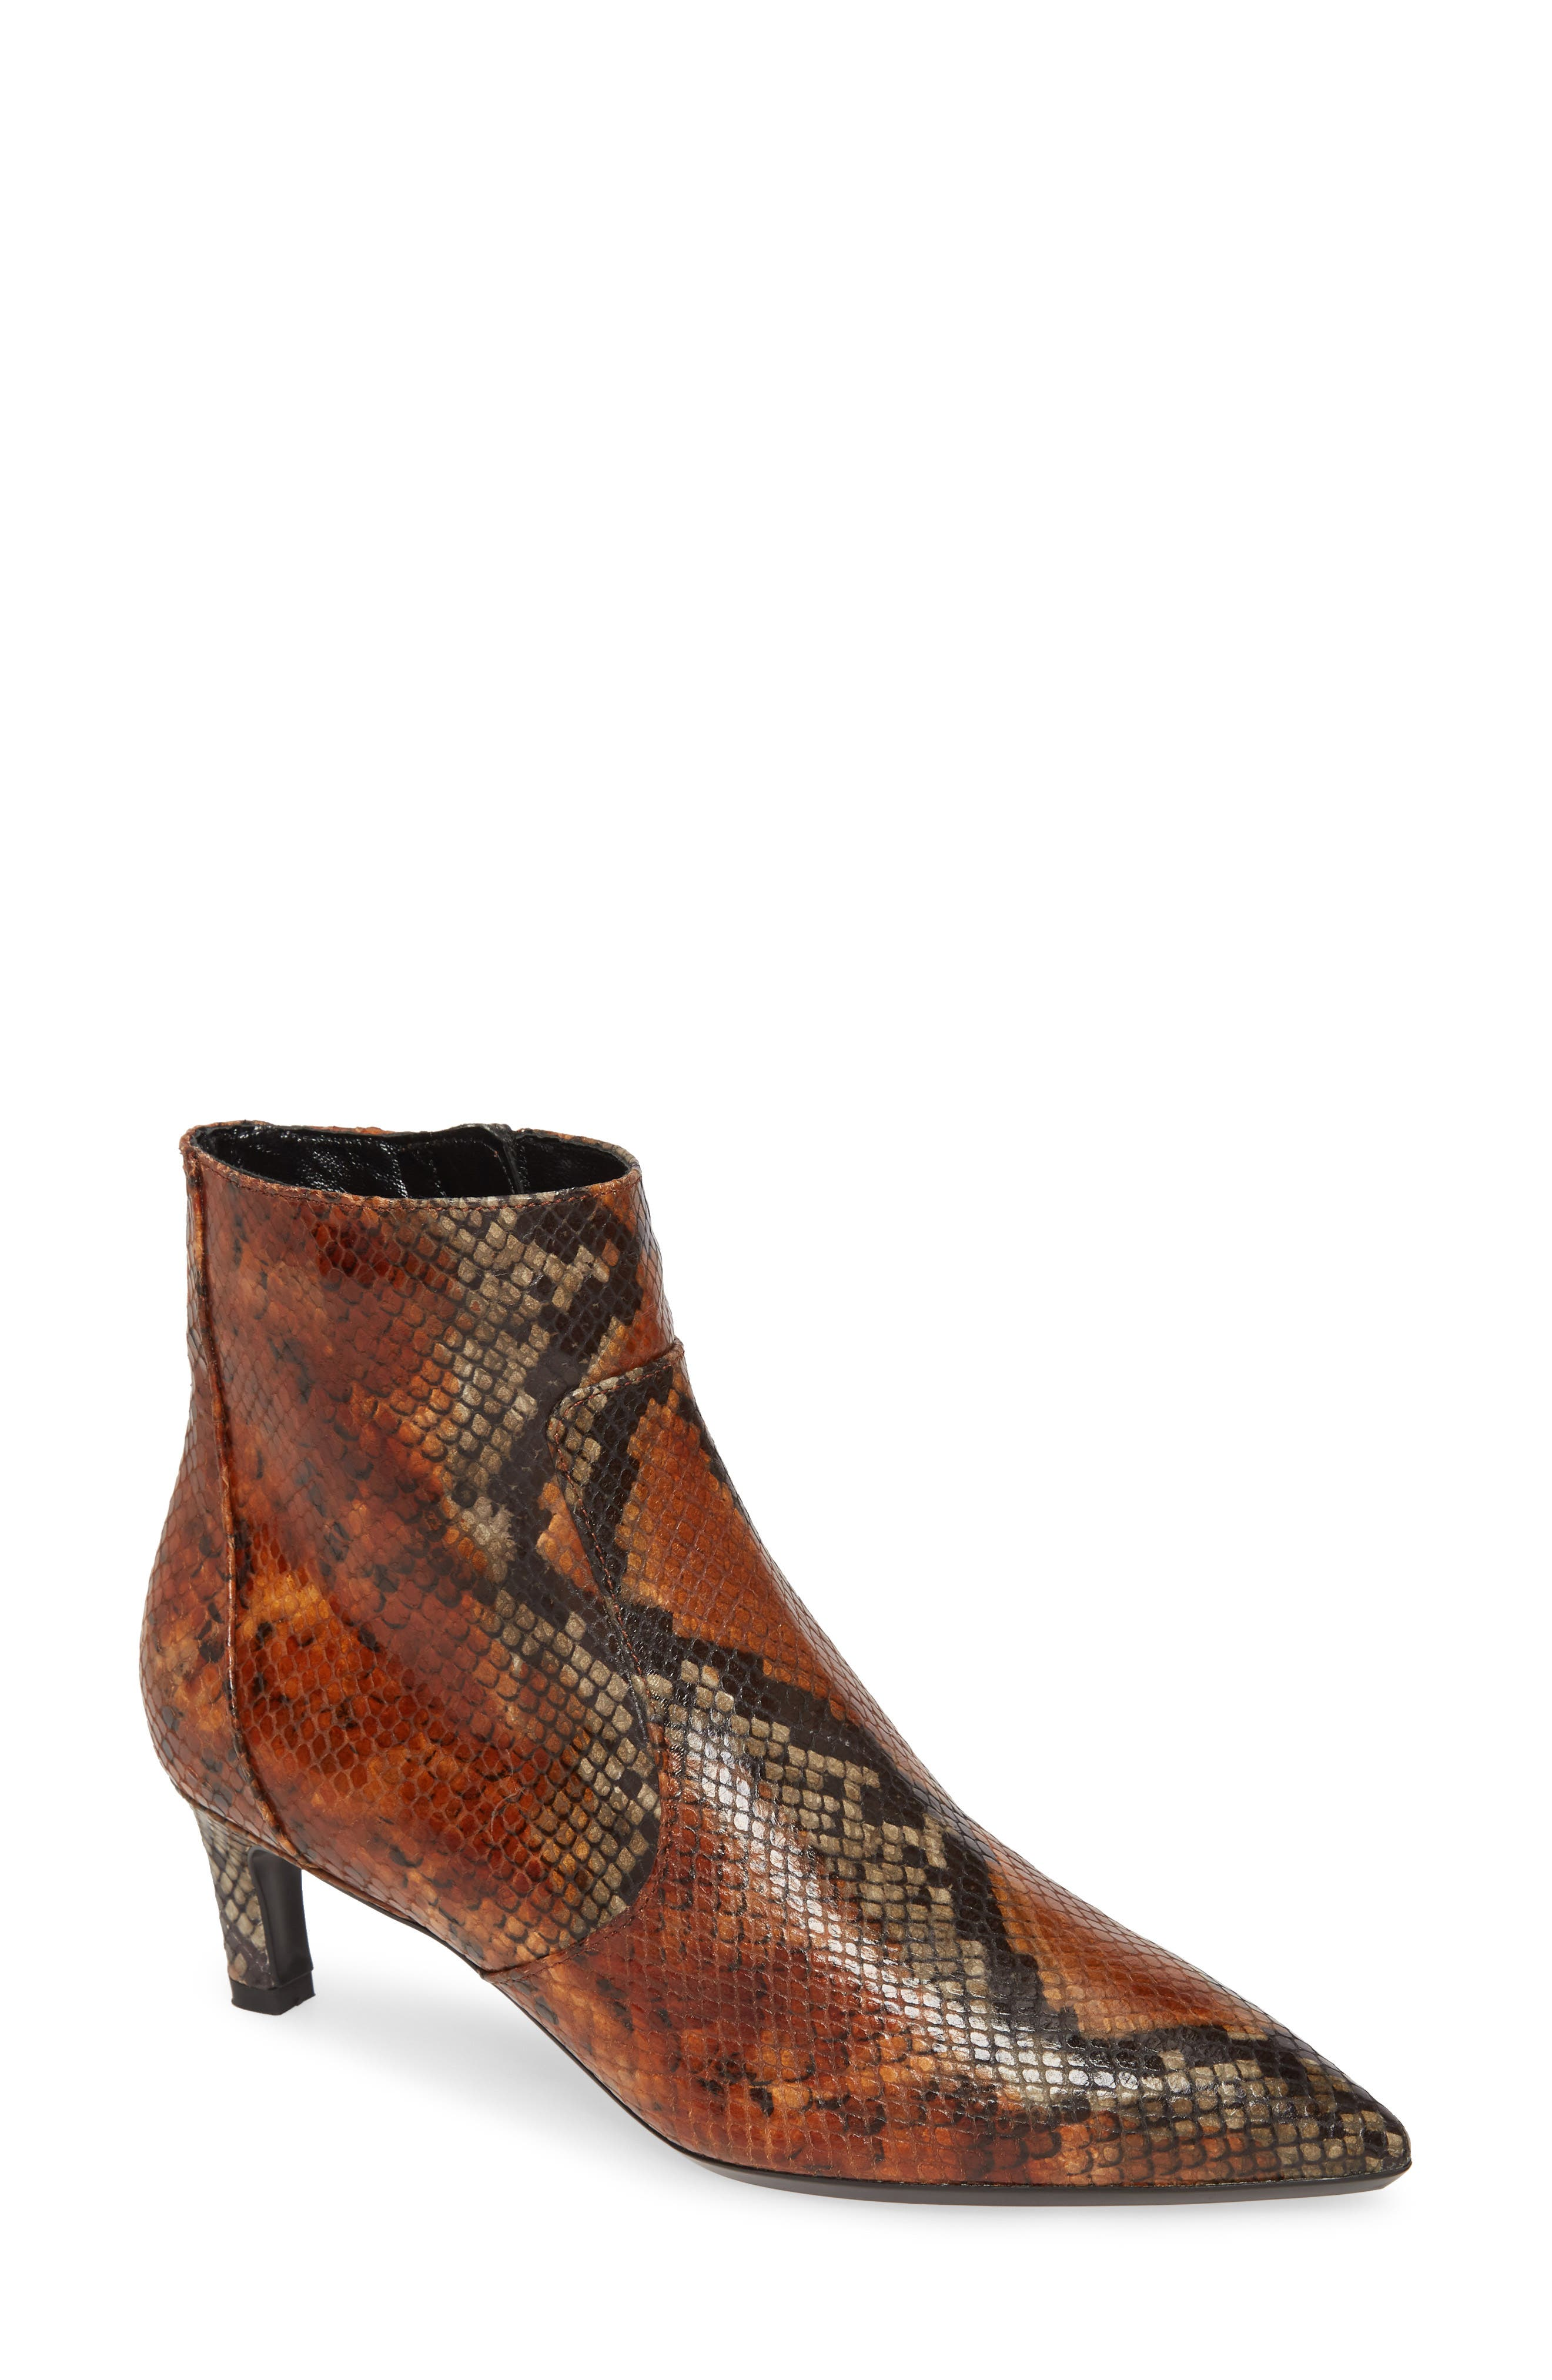 Image of Aquatalia Marilisa Snakeskin Embossed Leather Bootie